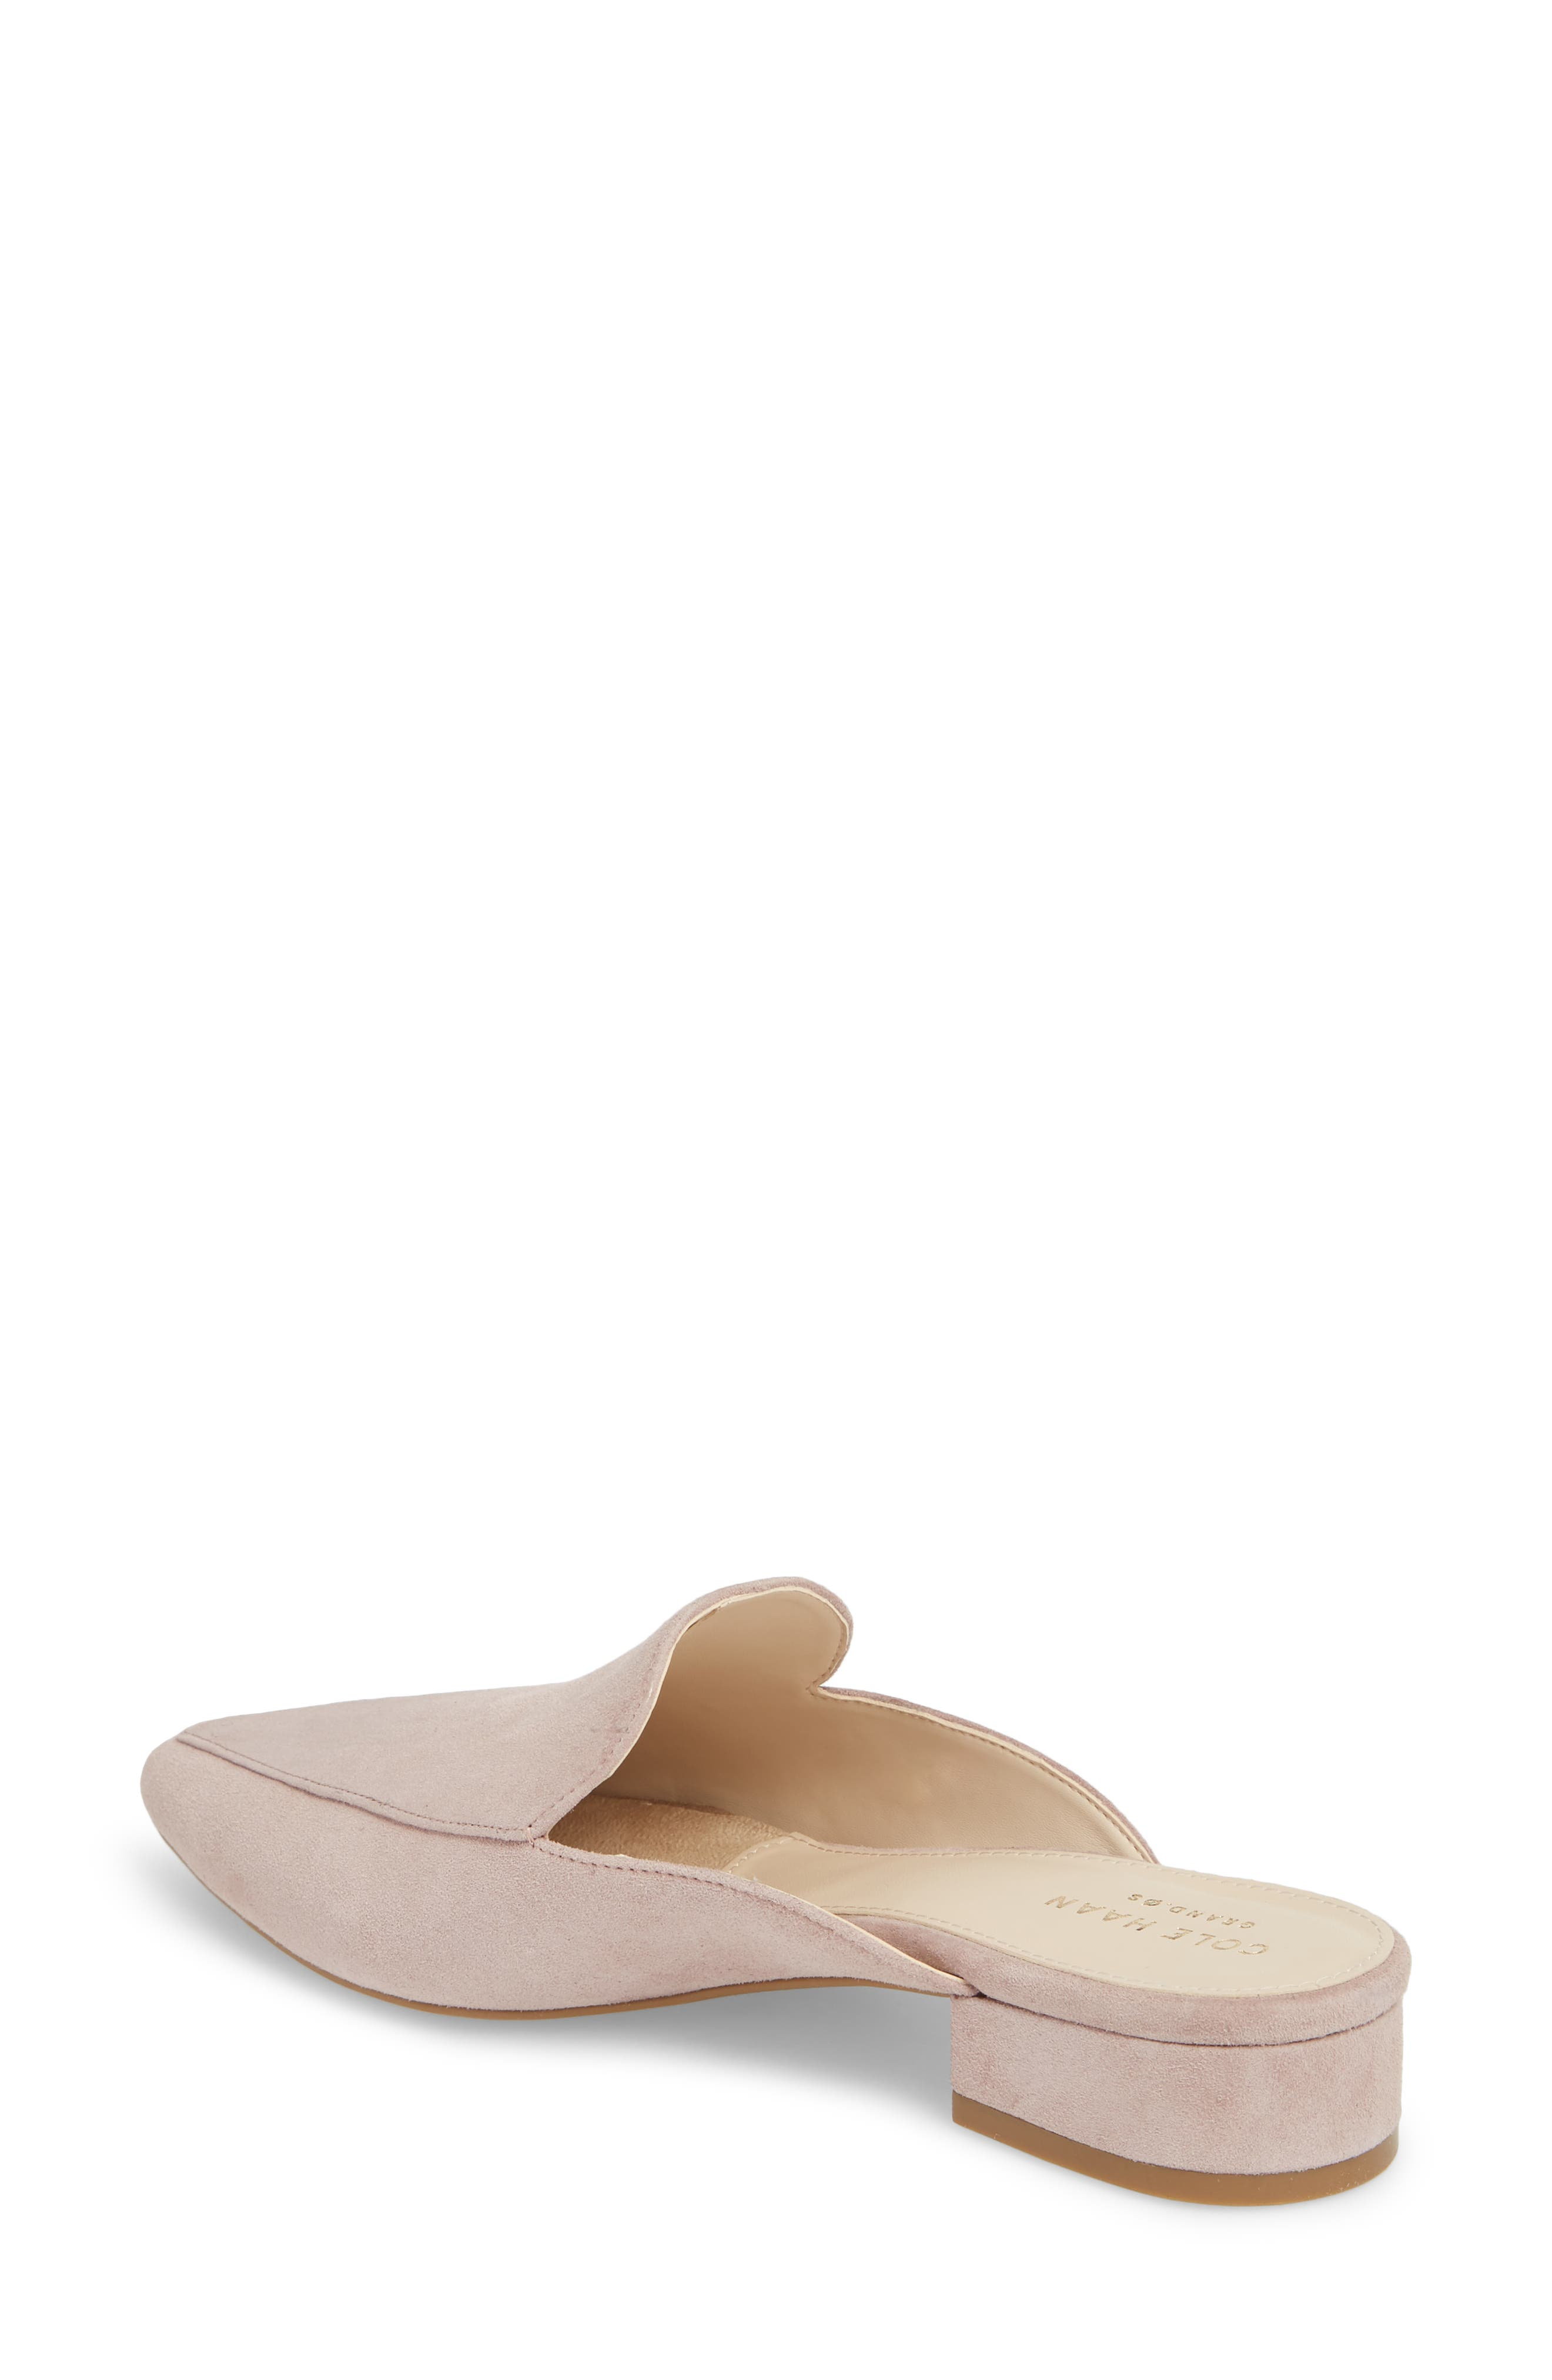 Piper Loafer Mule,                             Alternate thumbnail 2, color,                             Twilight Mauve Suede